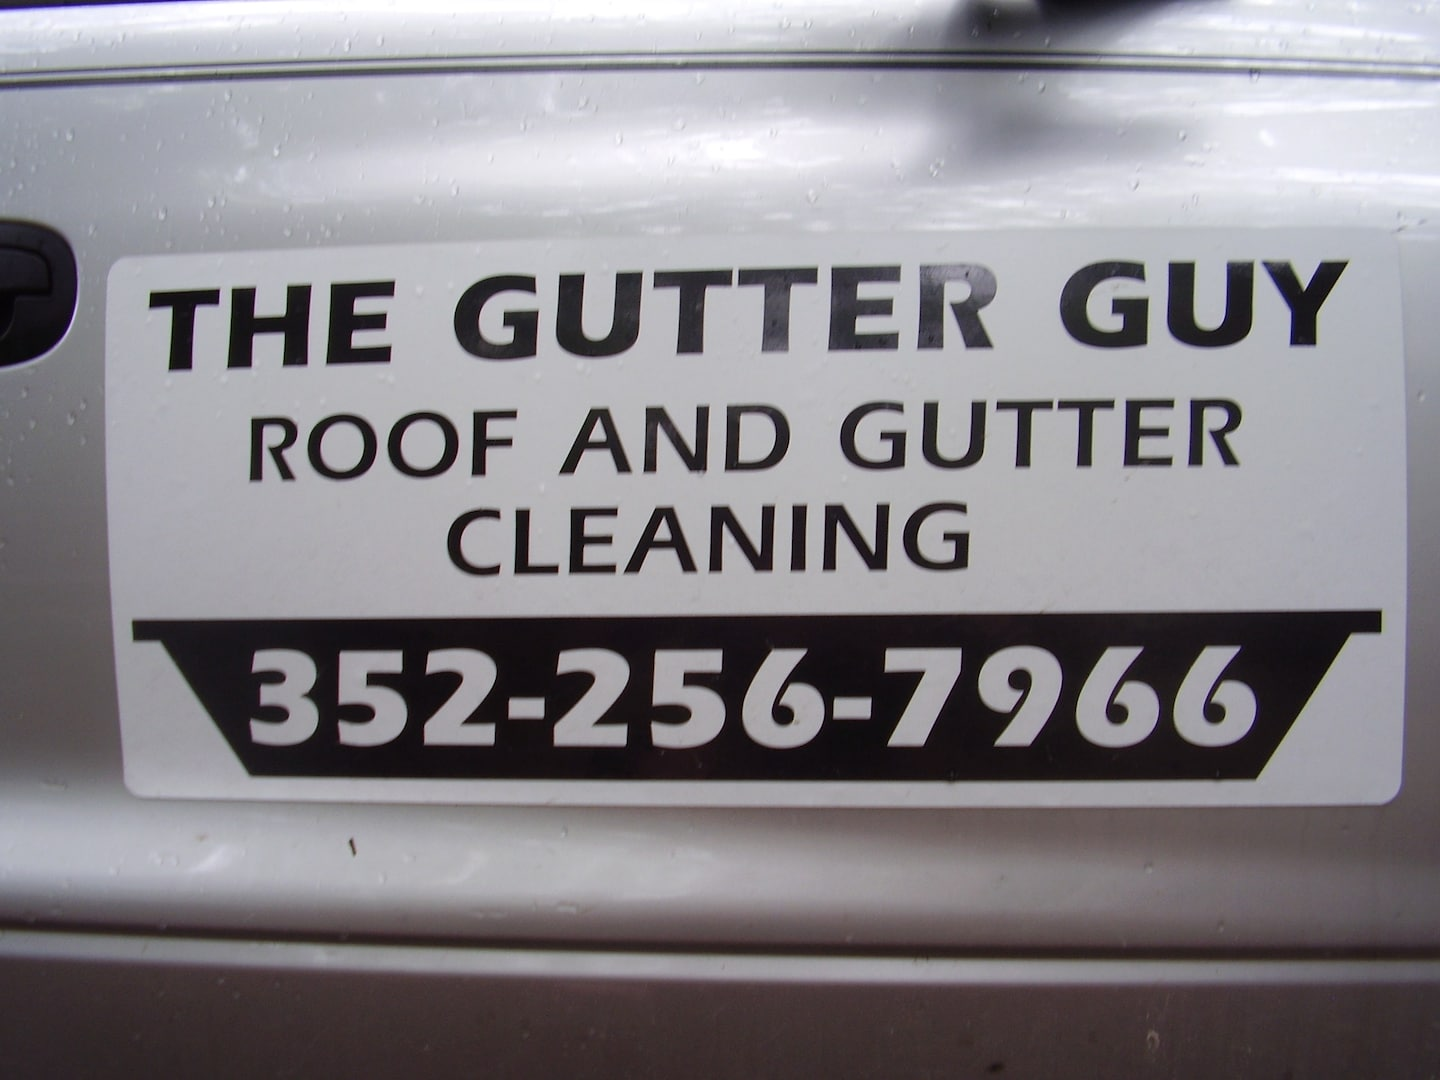 The Gutter Guy